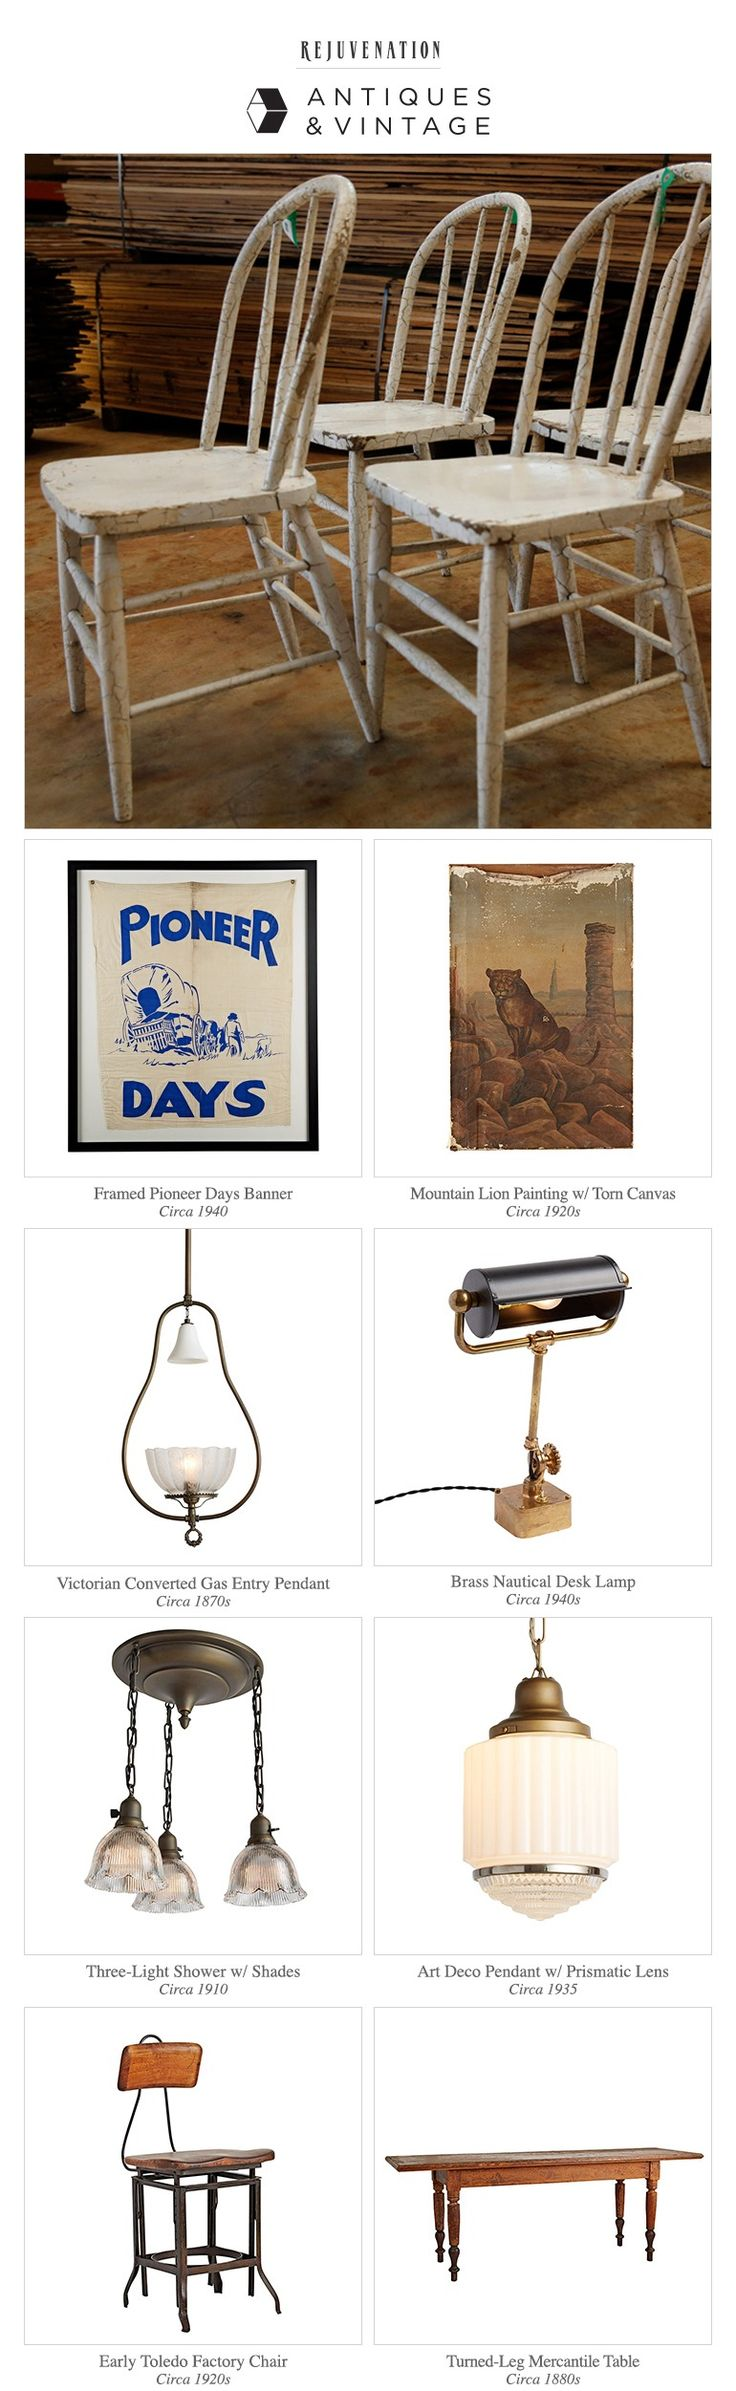 New Arrivals: Dining Chairs, Pioneer Days Banner, Mountain Lion Painting, Victorian Pendant, Nautical Desk Lamp, Shower Light Chandelier, Art Deco Pendant, Toledo Factory Chair, Mercantile Table.